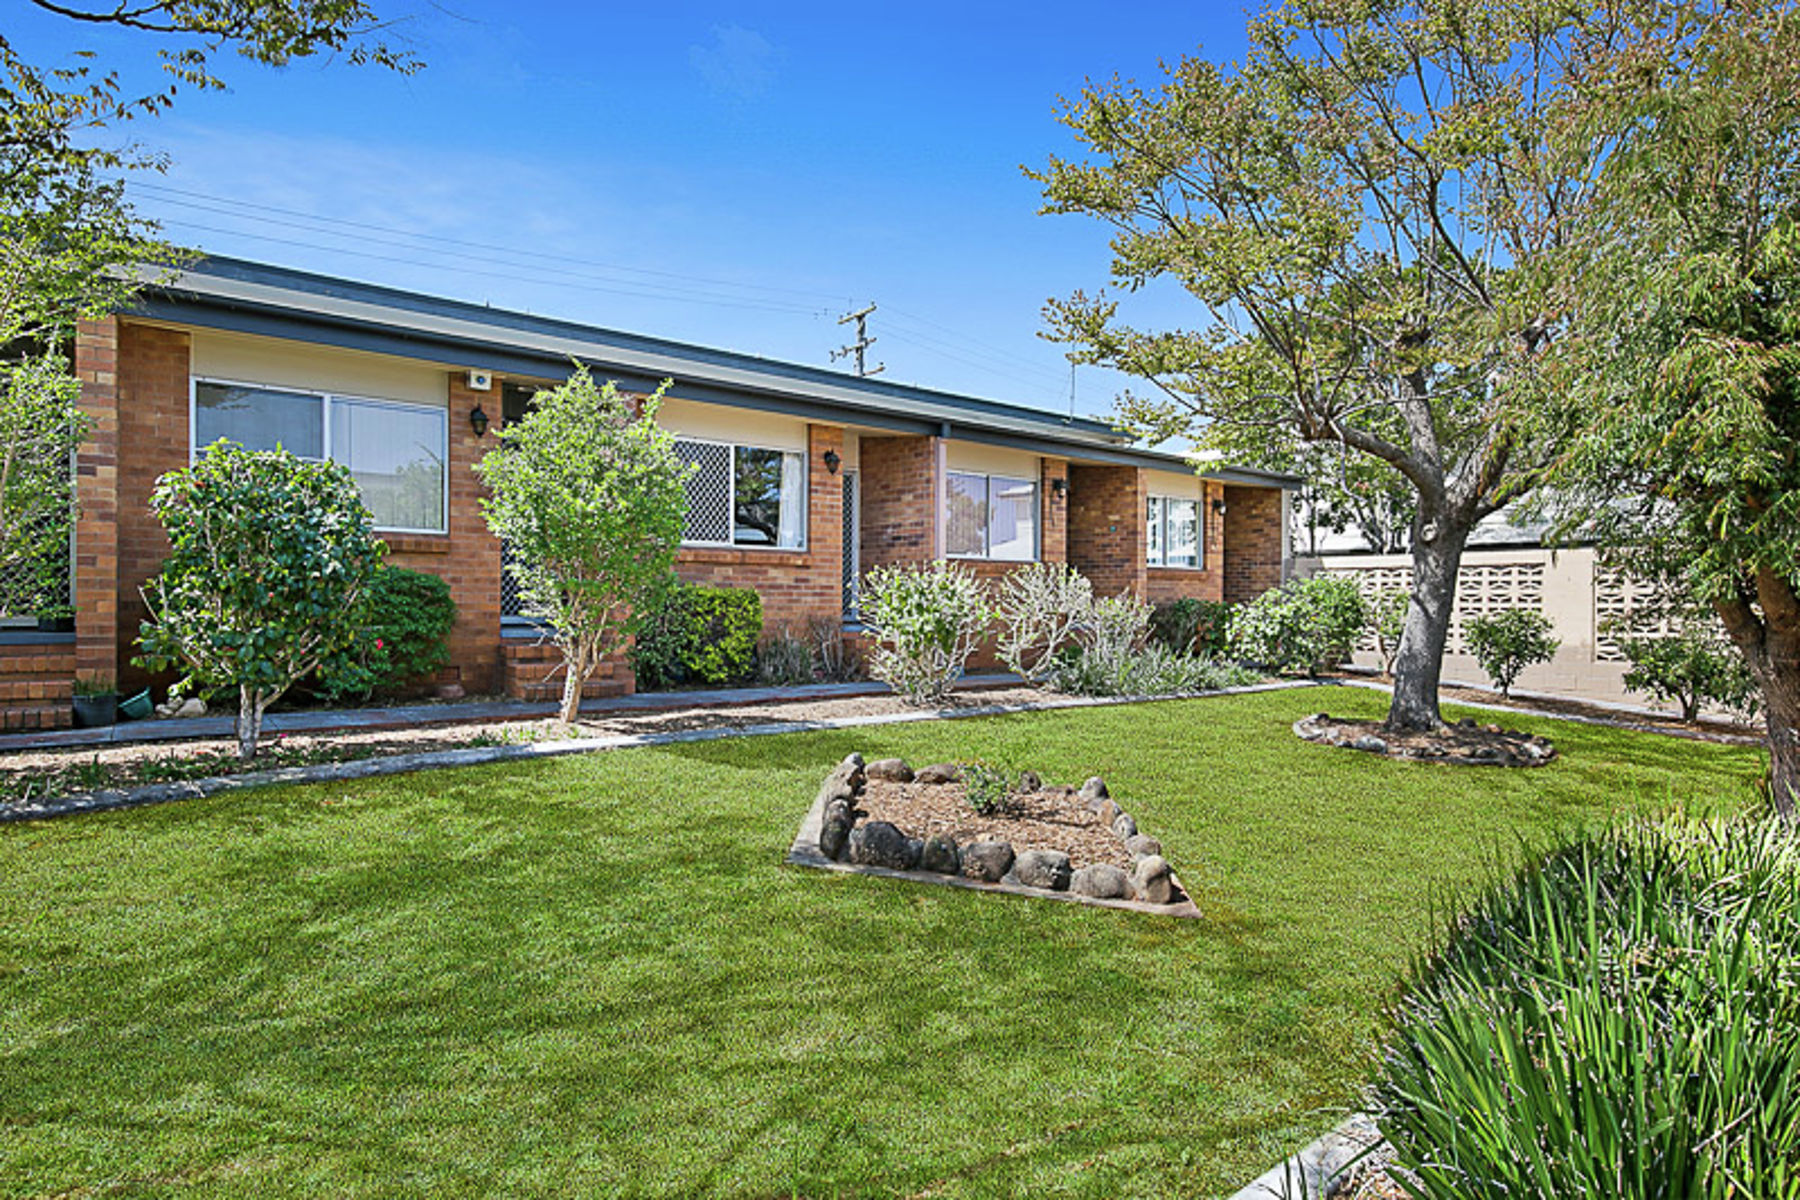 ENTRY LEVEL IN RANGEVILLE! ACT QUICKLY!